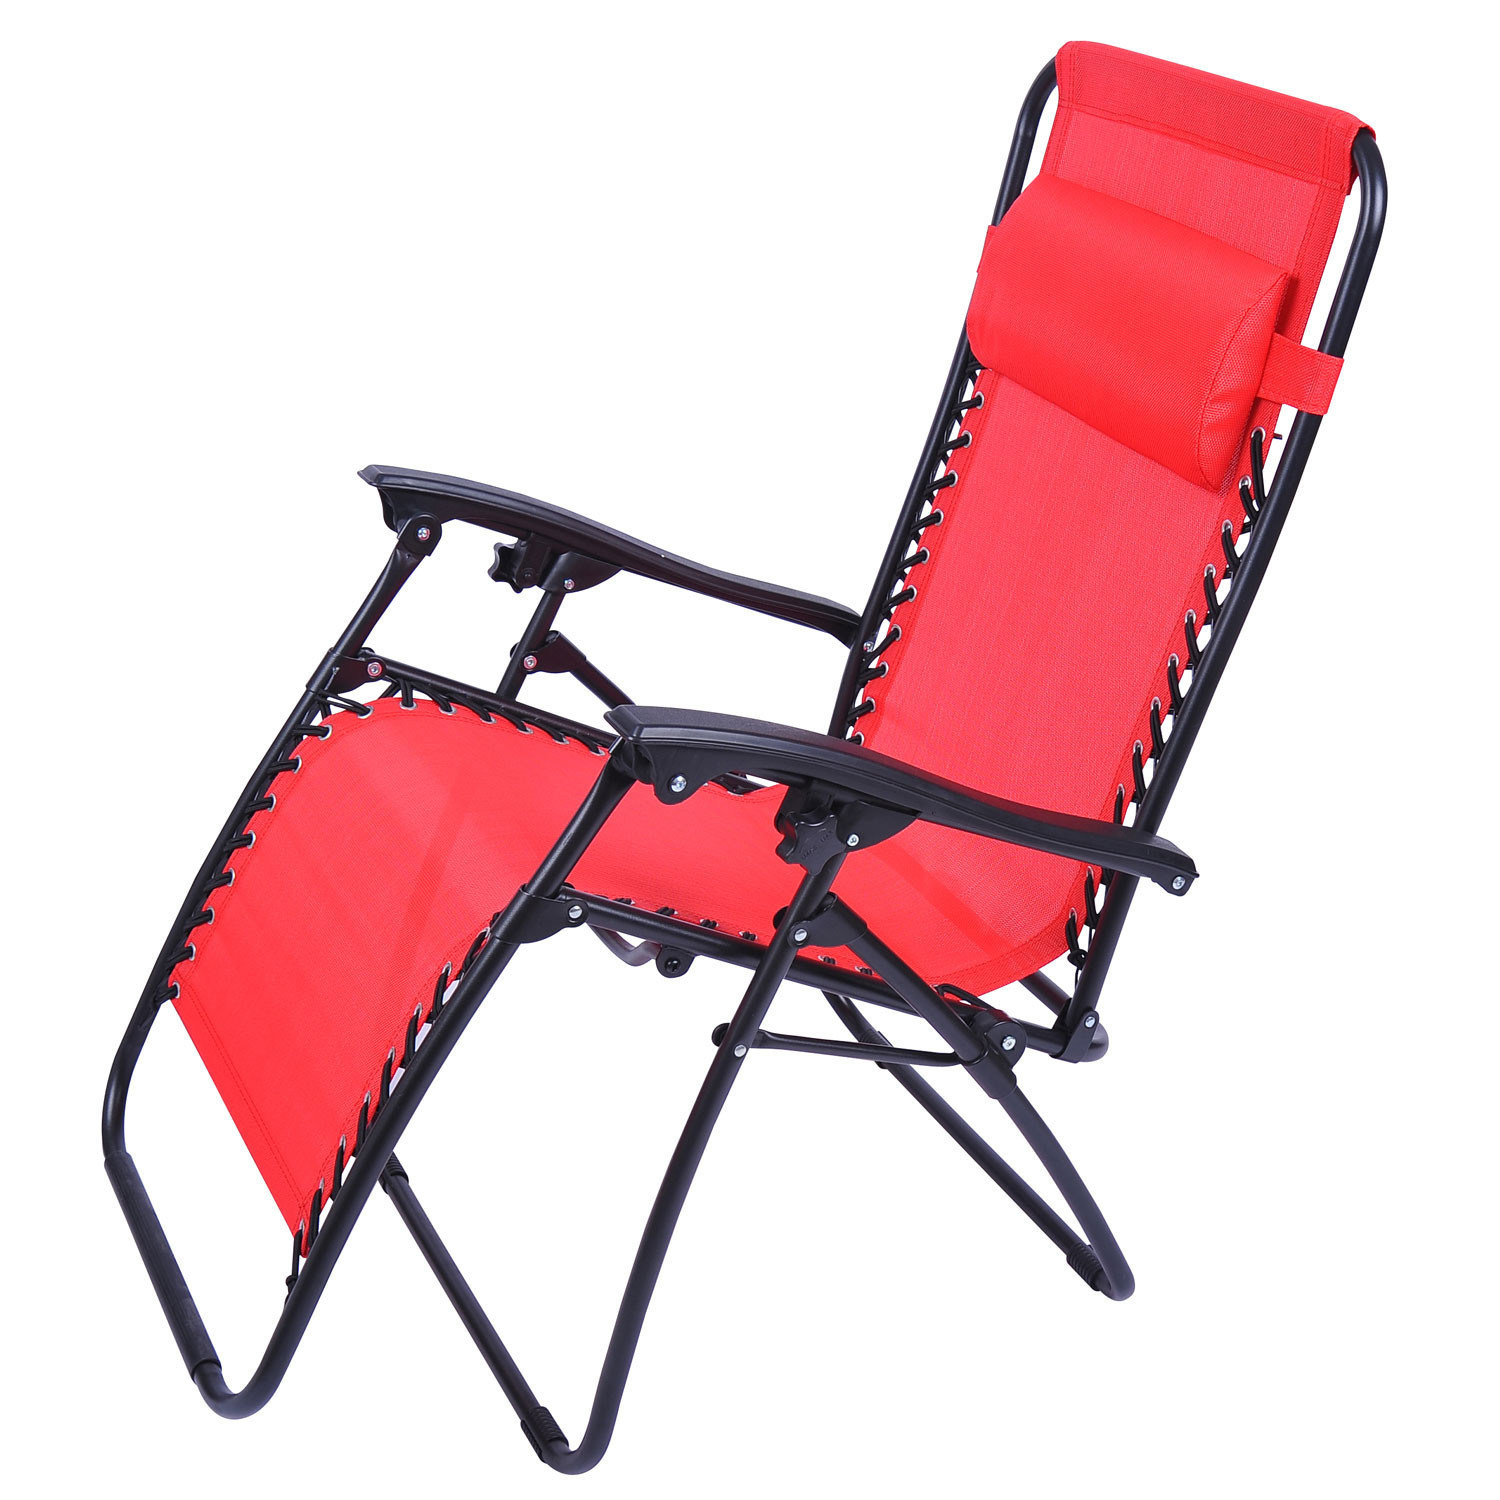 Hot Item Zero Gravity Folding Chair Model Nbf 01 Textilene Lafuma And Leisure Chair